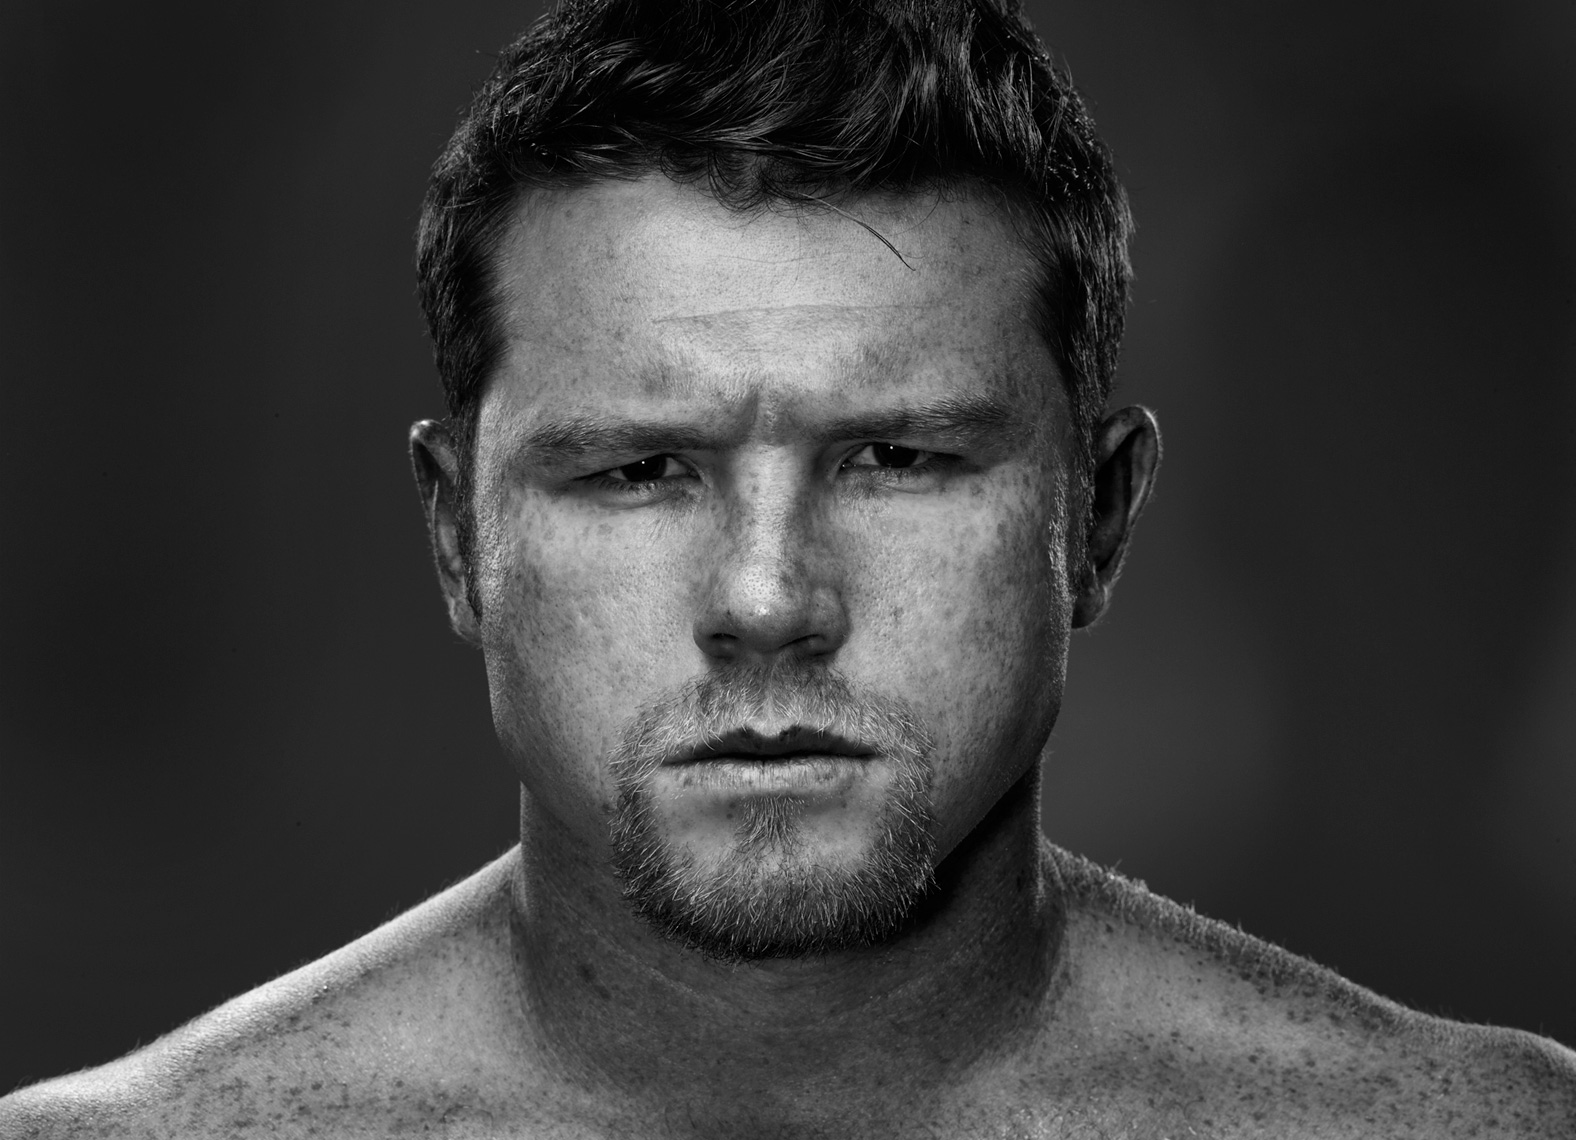 Canelo Alvarez for HBO Boxing photo by Monte Isom